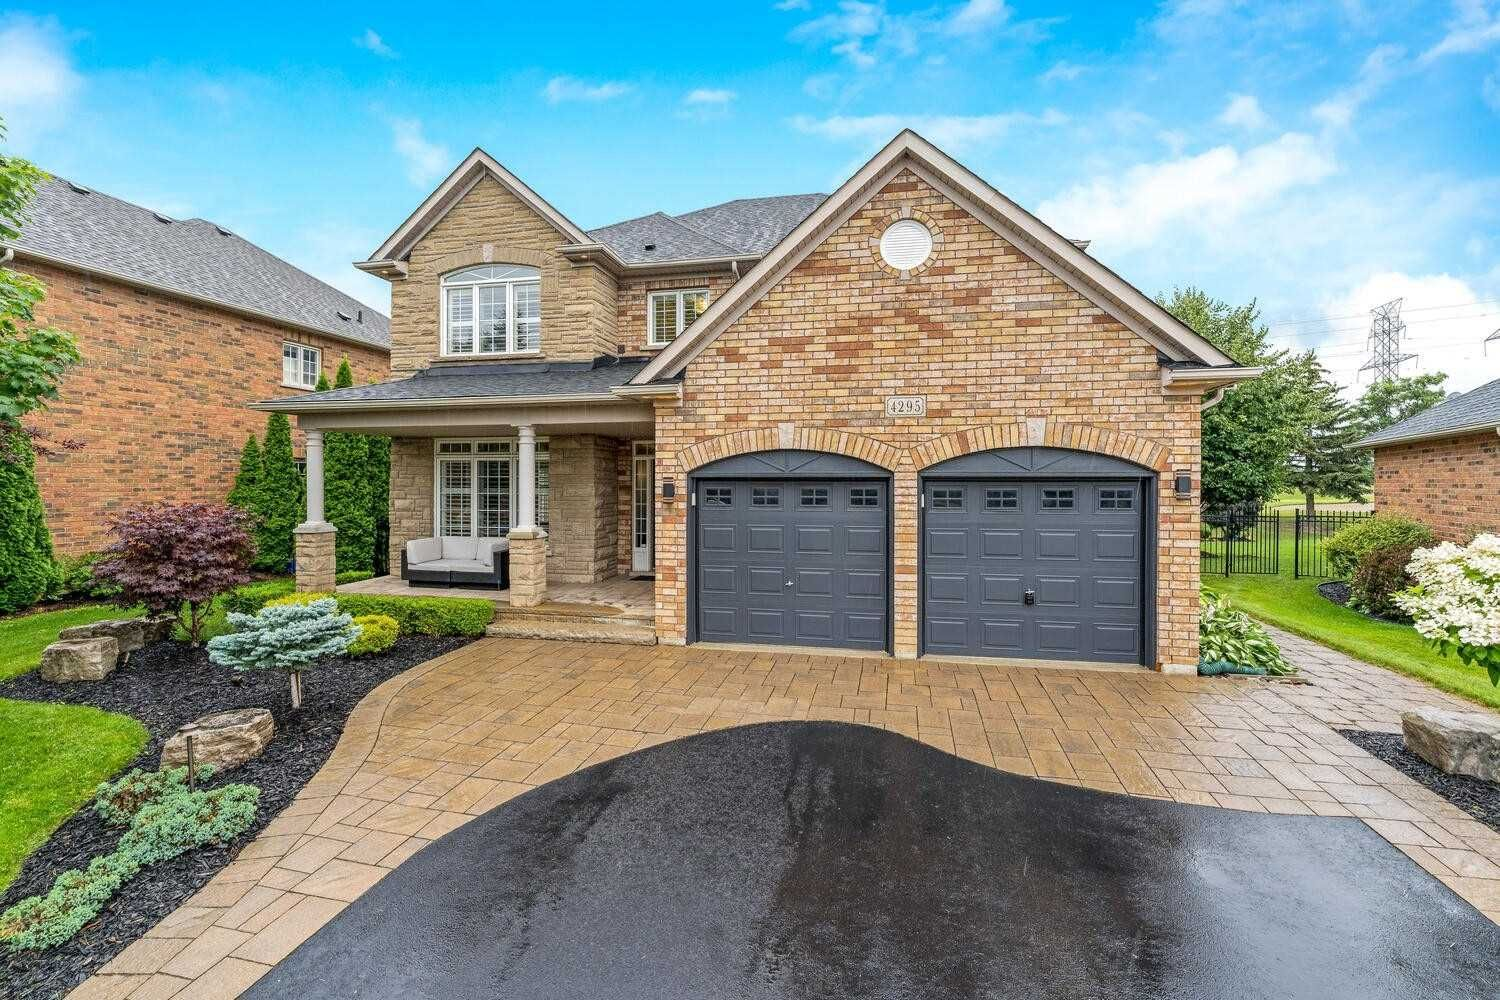 Main Photo: 4295 Couples Cres in Burlington: Rose Freehold for sale : MLS®# W5305344